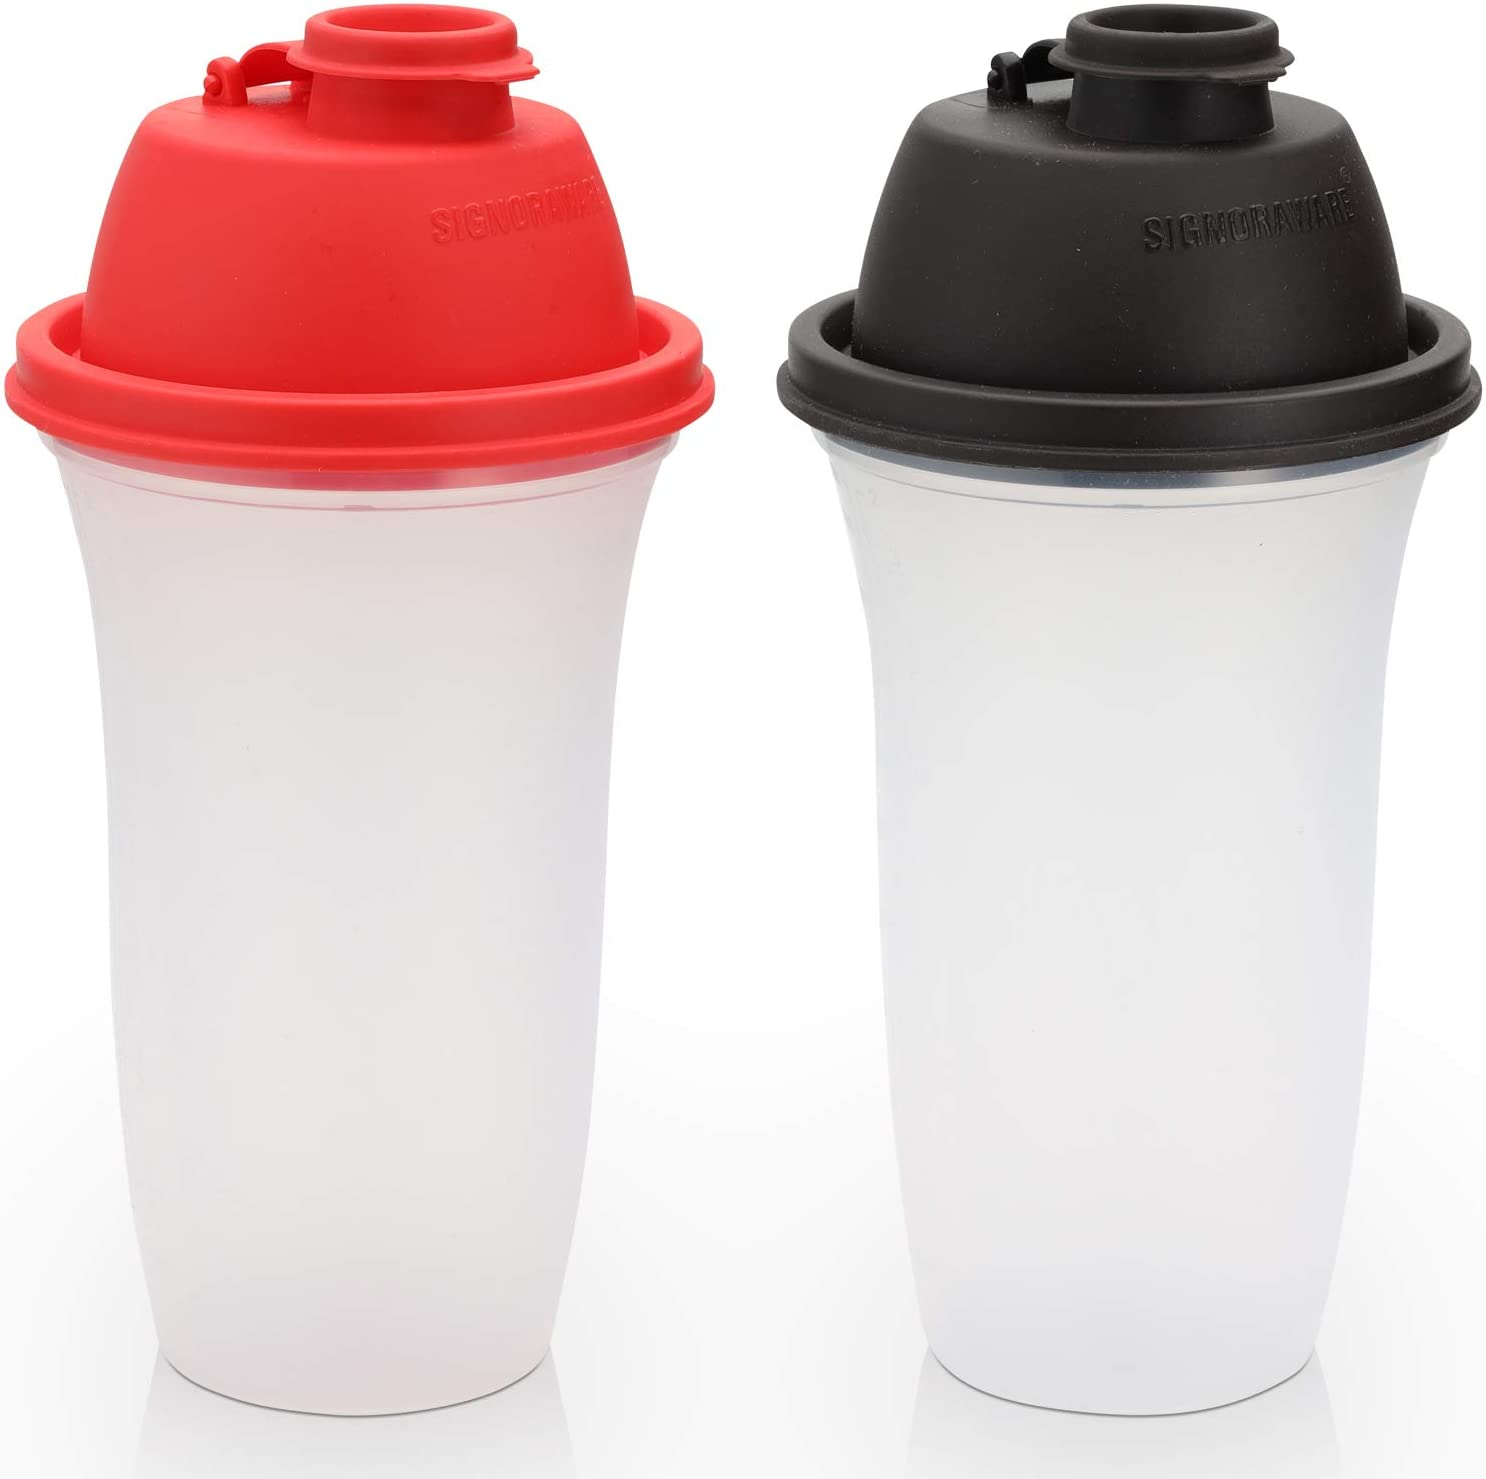 Signoraware Shaker Bottles | 17-Ounce Plastic Protein Shake Bottle for Meal Replacement Shakes & Smoothies, Beverages, Mixing Salad Dressing & Sauces, Margarita, More | 2 Pack